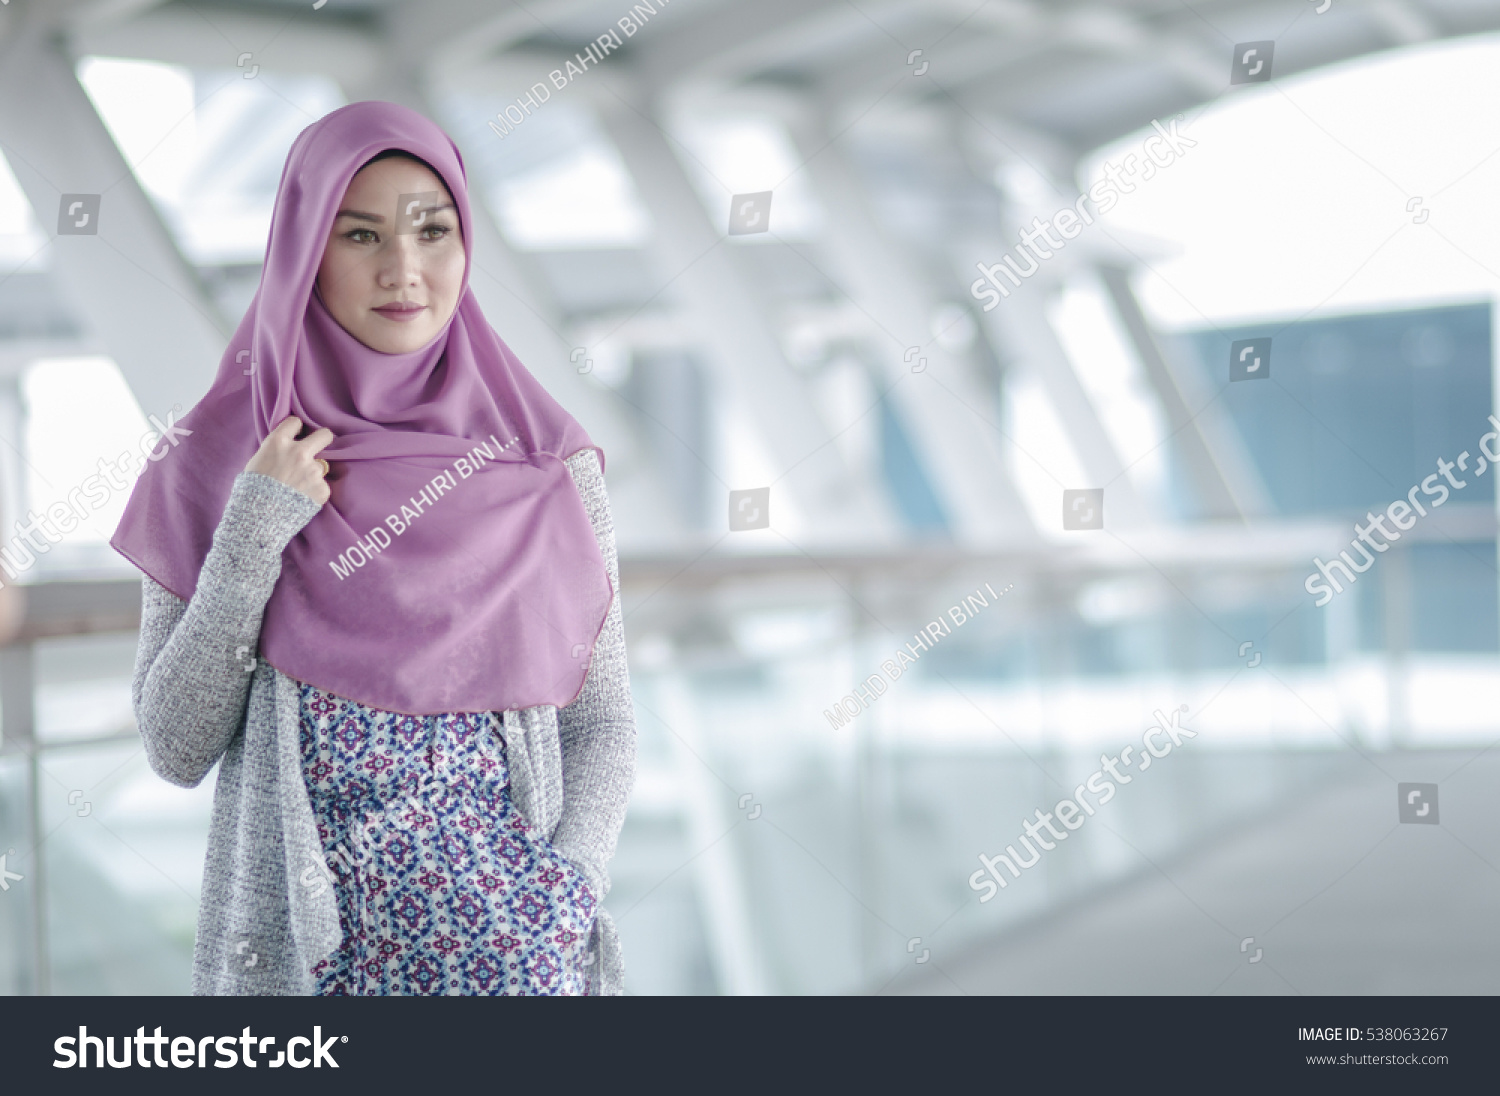 convoy muslim women dating site This is what it's like to date as a young american muslim by many muslim women are left torn between a dichotomy like muslim american dating sites.